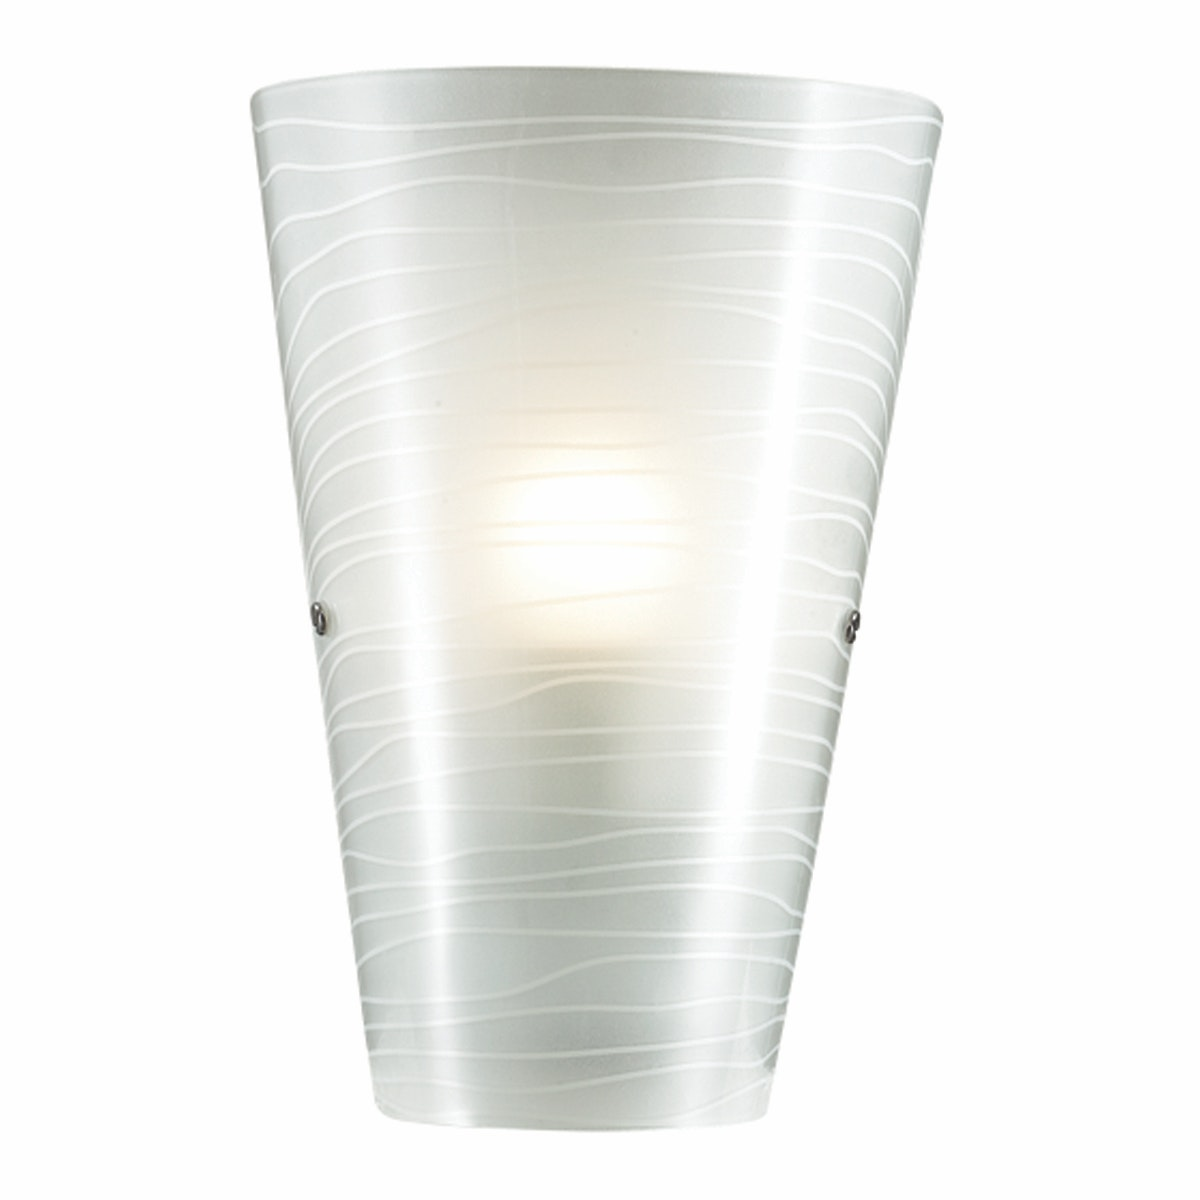 3+Projects Lampu Dinding / Wall Lamp White Silkscreen Outside 3+DL-WL255-WH-AH